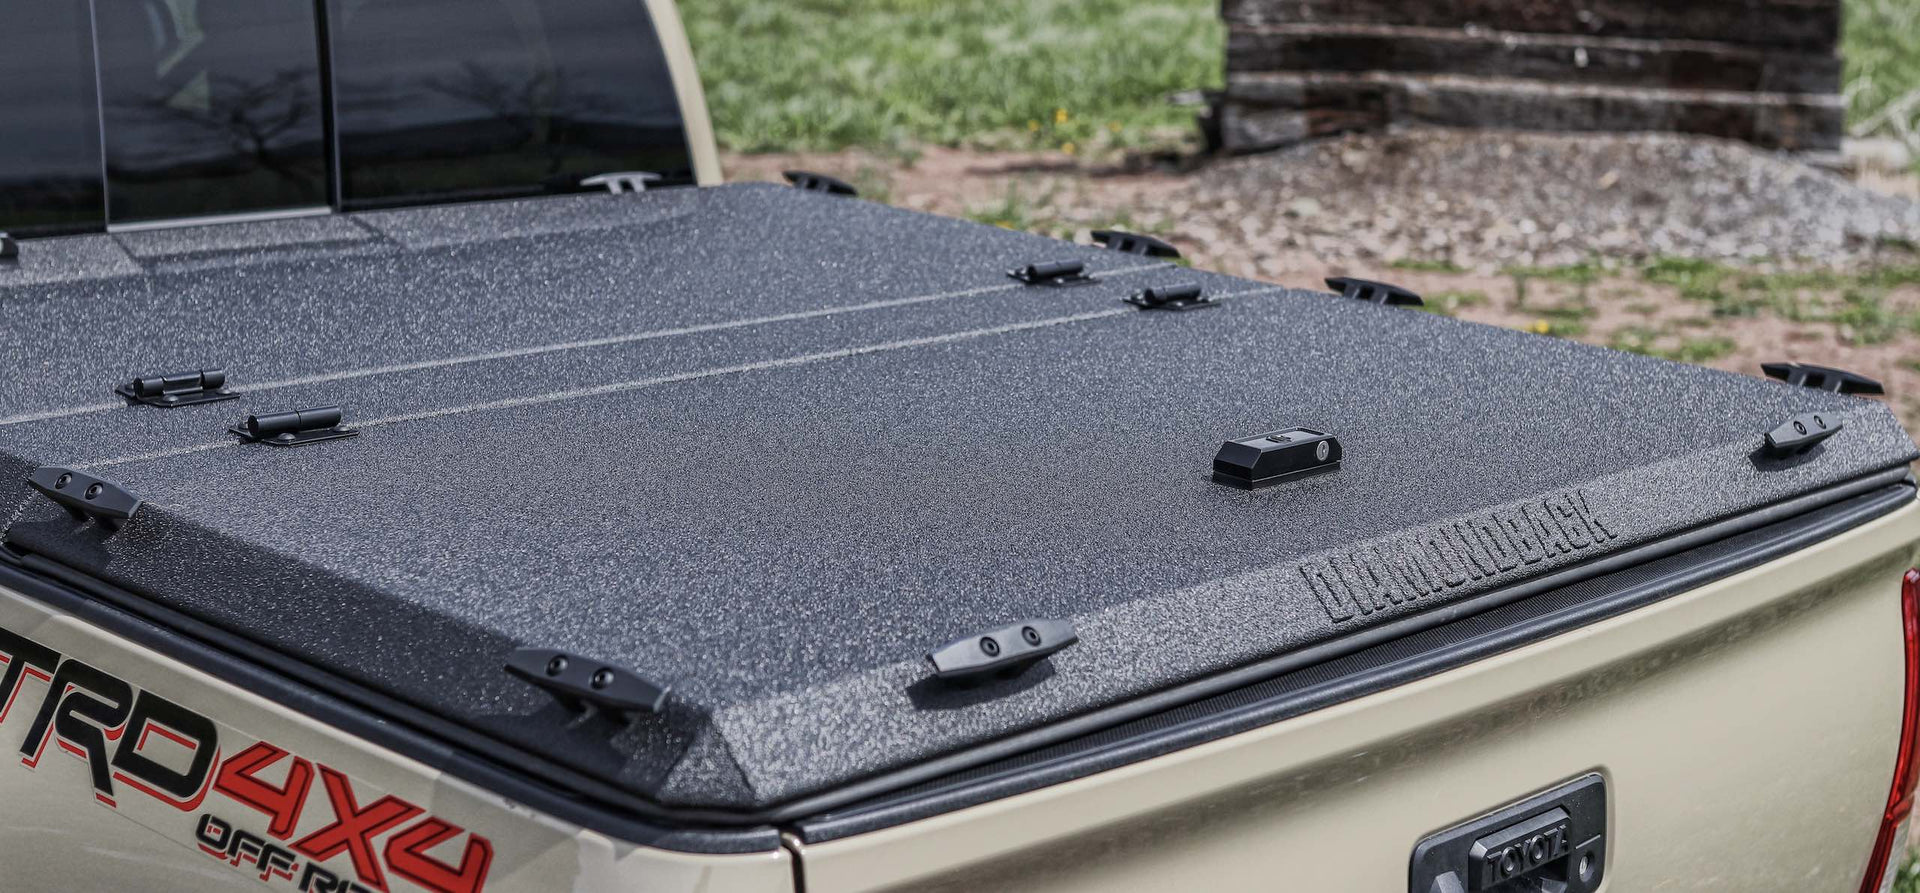 Toyota Tacoma with DiamondBack HD diamond plate bed cover